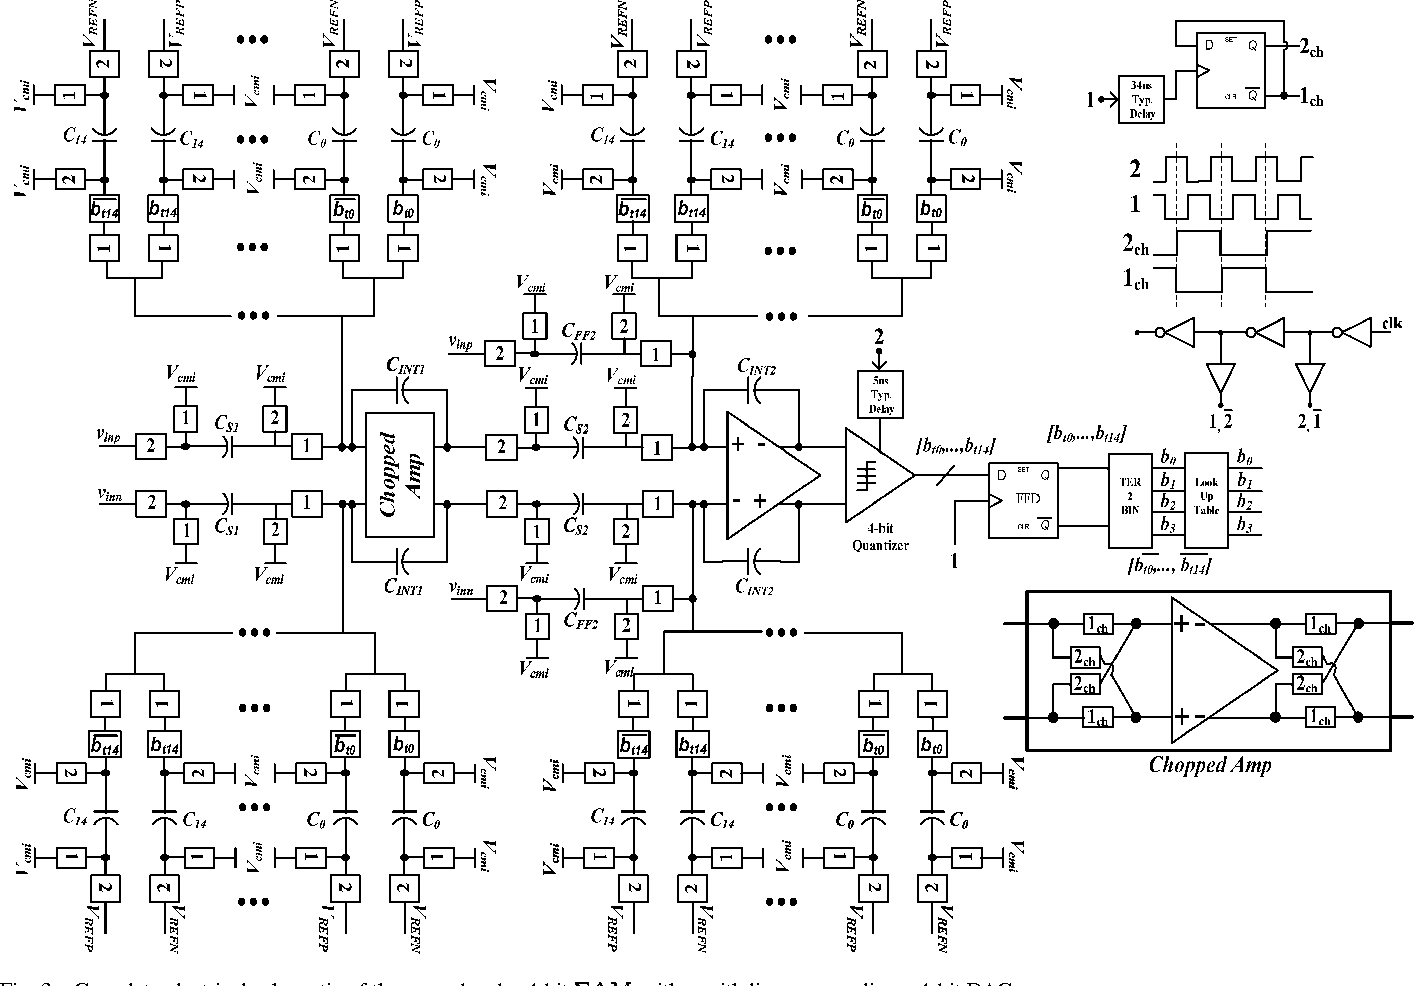 Complete electrical schematic of the second-order 4-bit s